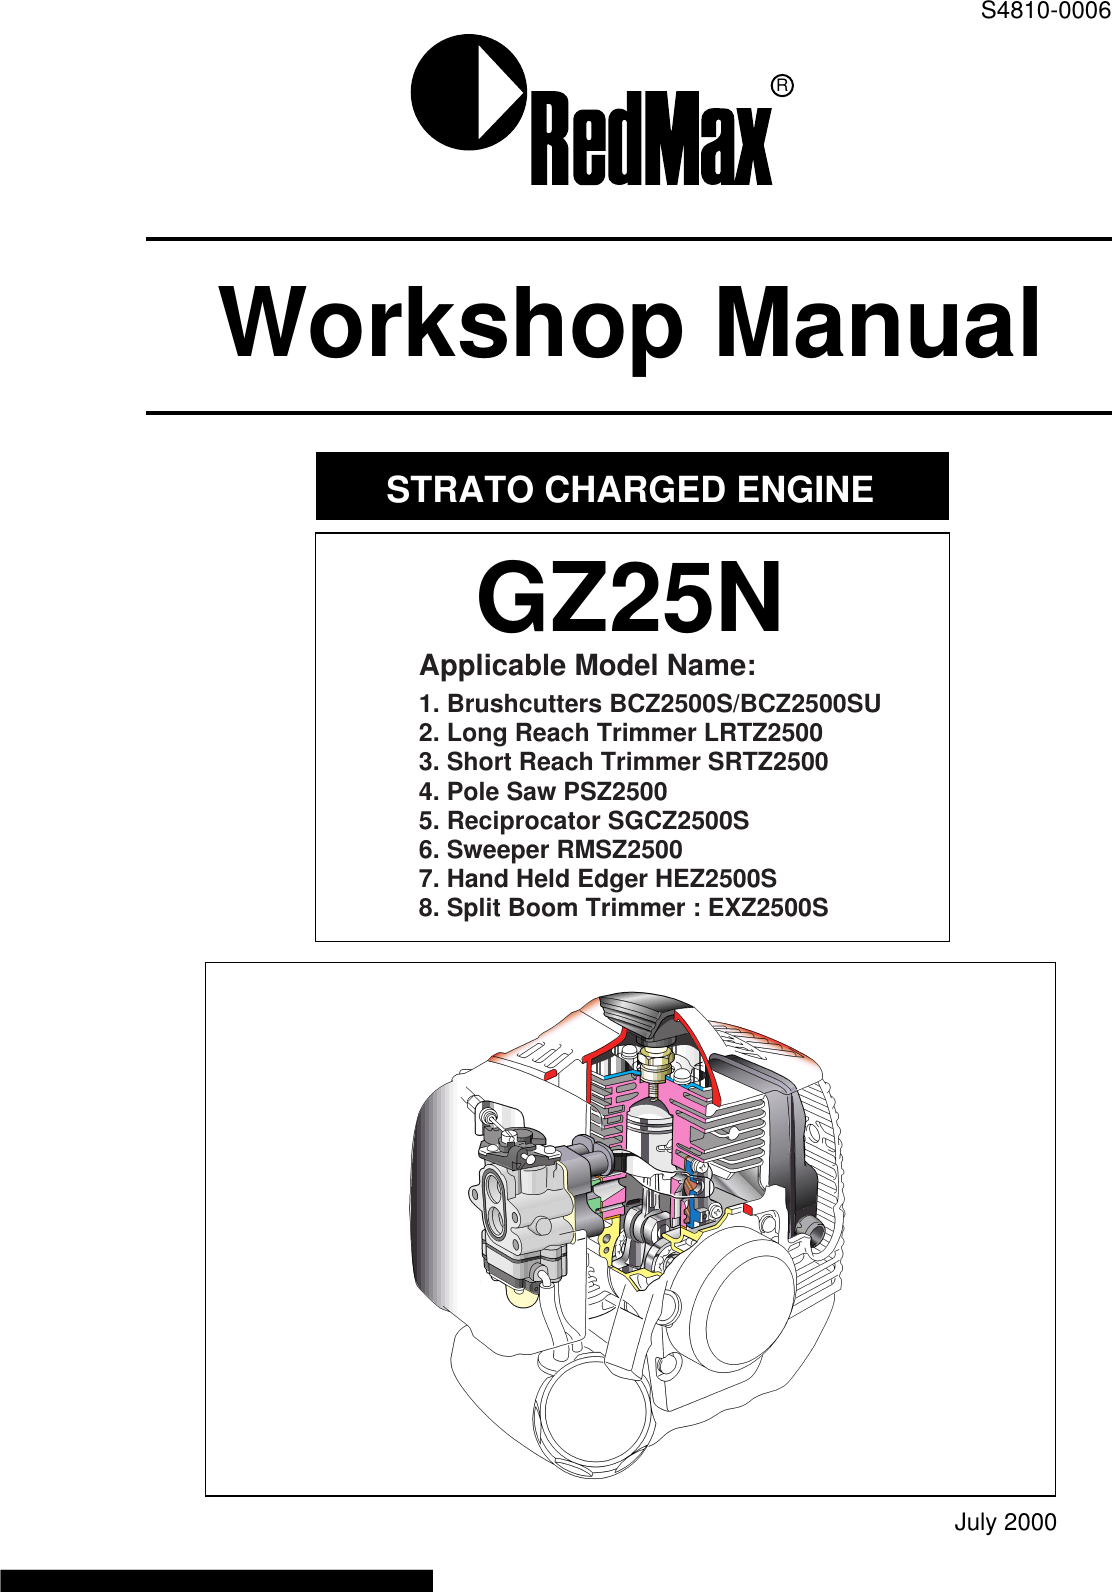 The Whoolie Shop Manual Guide